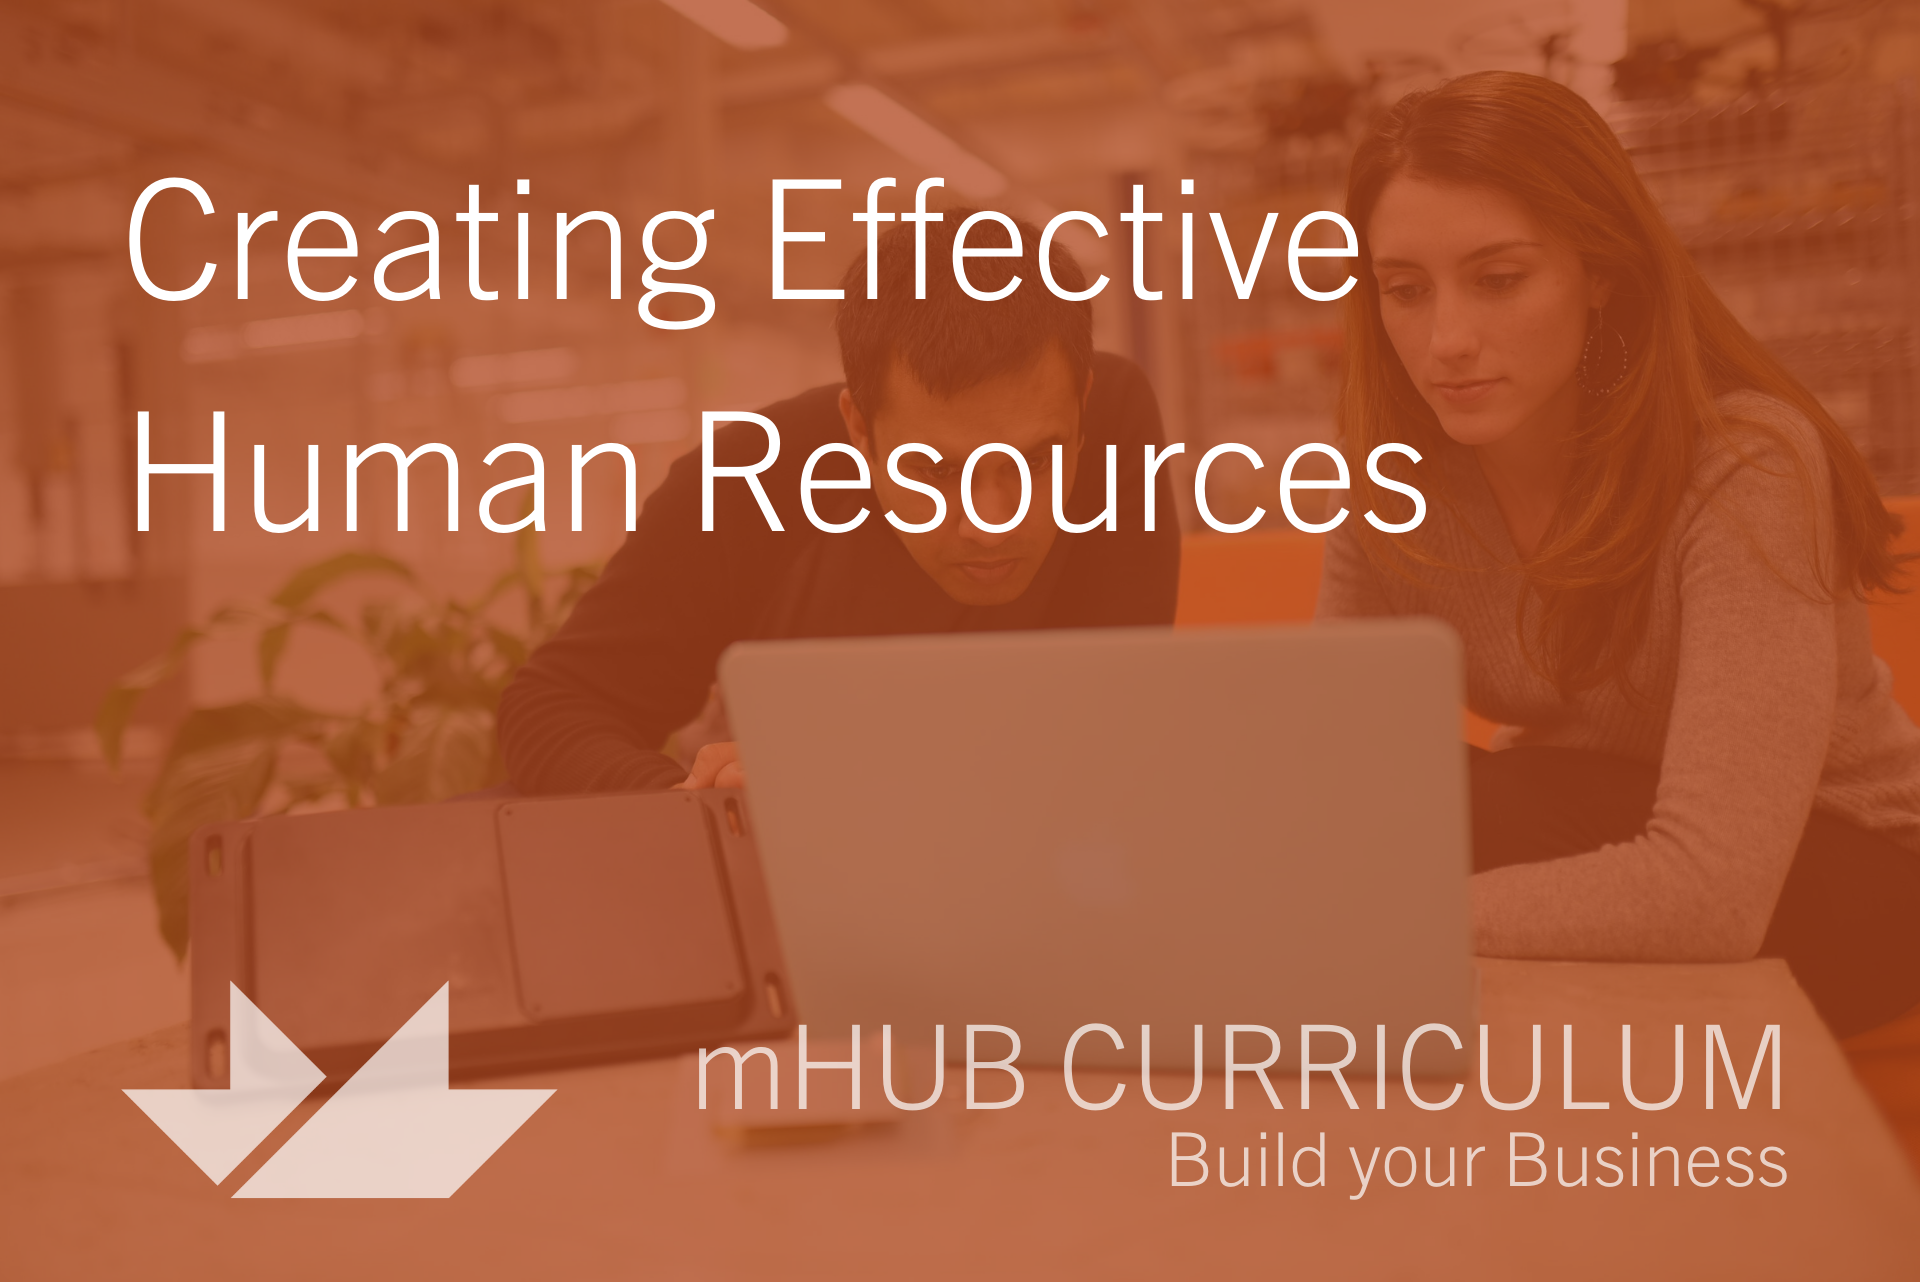 Creating Effective Human Resources